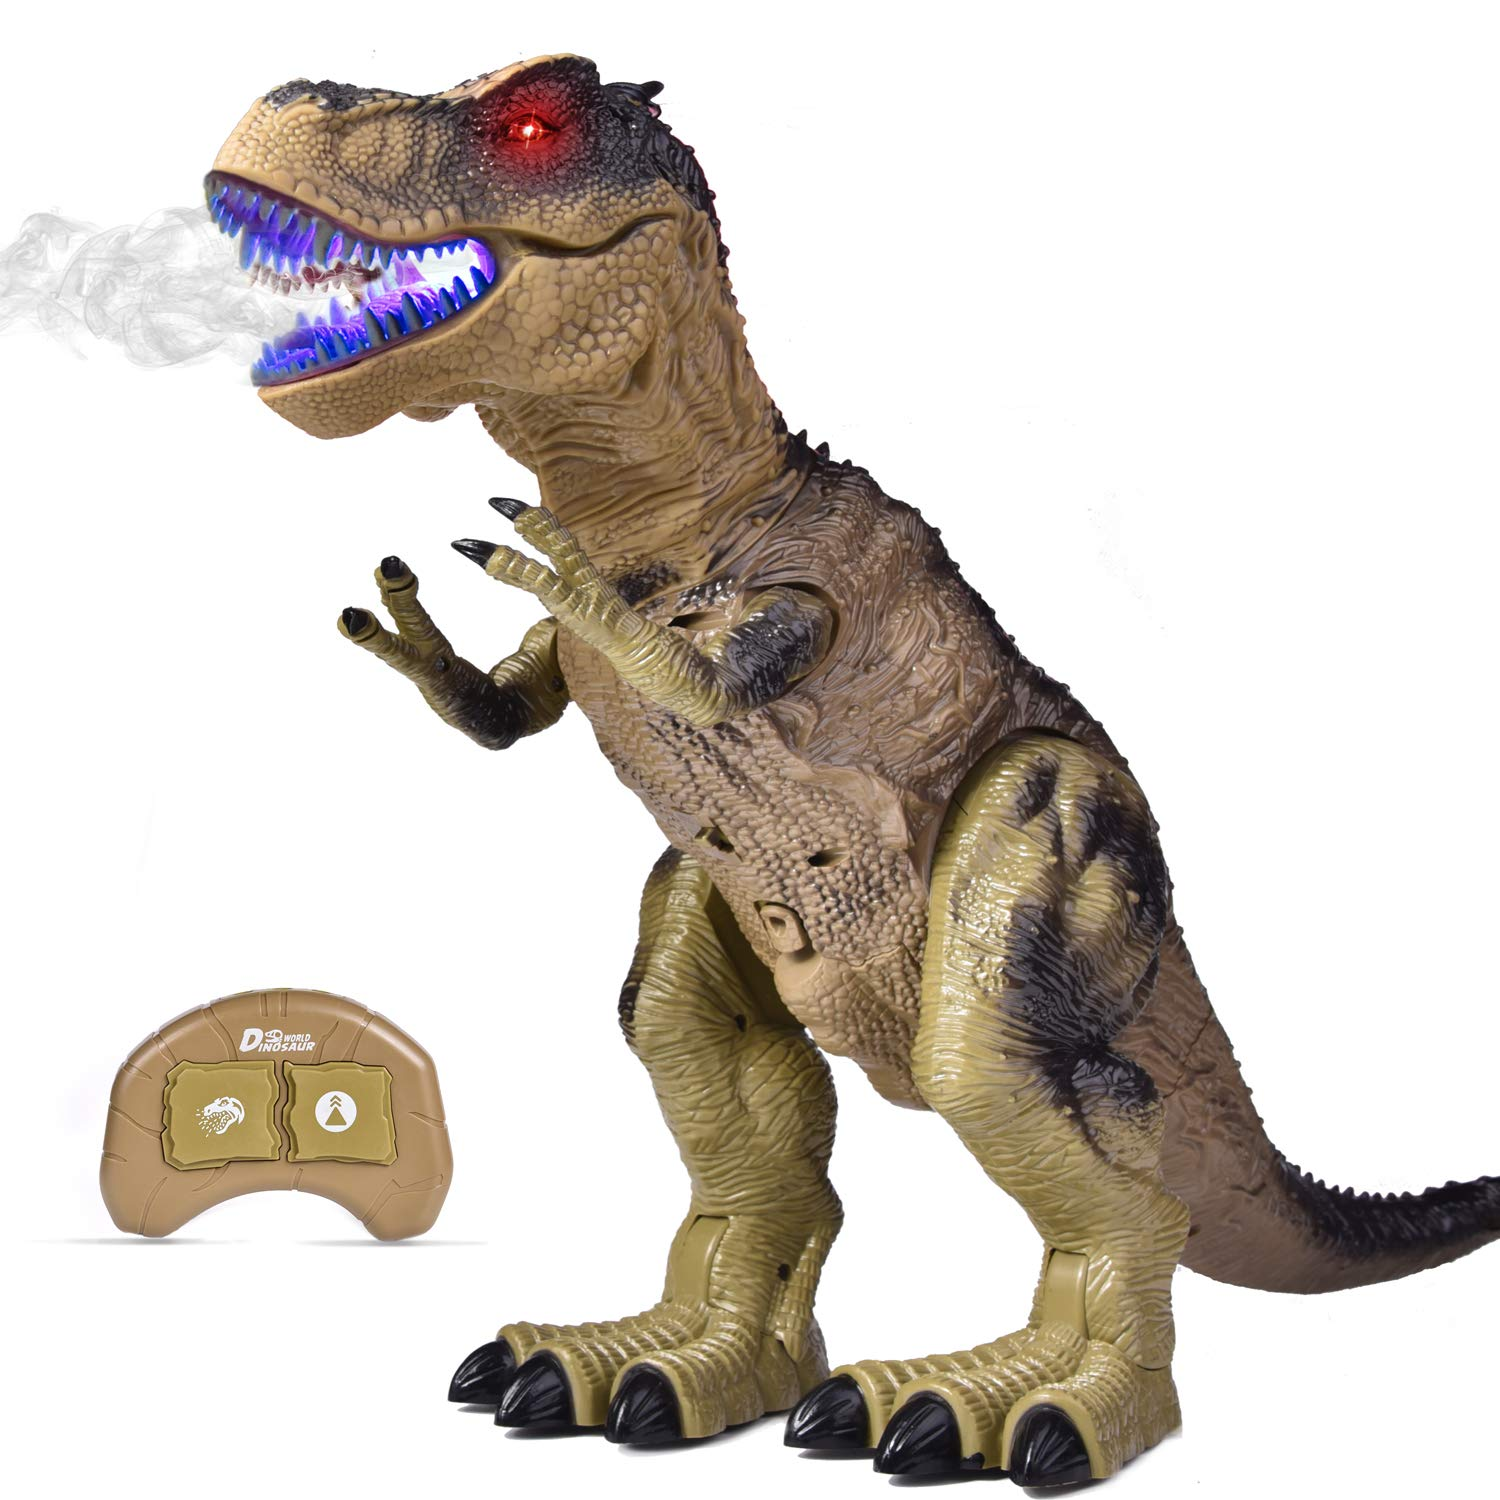 Remote Control Dinosaur for Kids, Electronic Walking & Spray Mist Large Dinosaur Toys with Glowing Eyes, Roaring Dinosaur Sound,18.5'' Realistic T-Rex Toy for Boys by FUN LITTLE TOYS (Image #1)